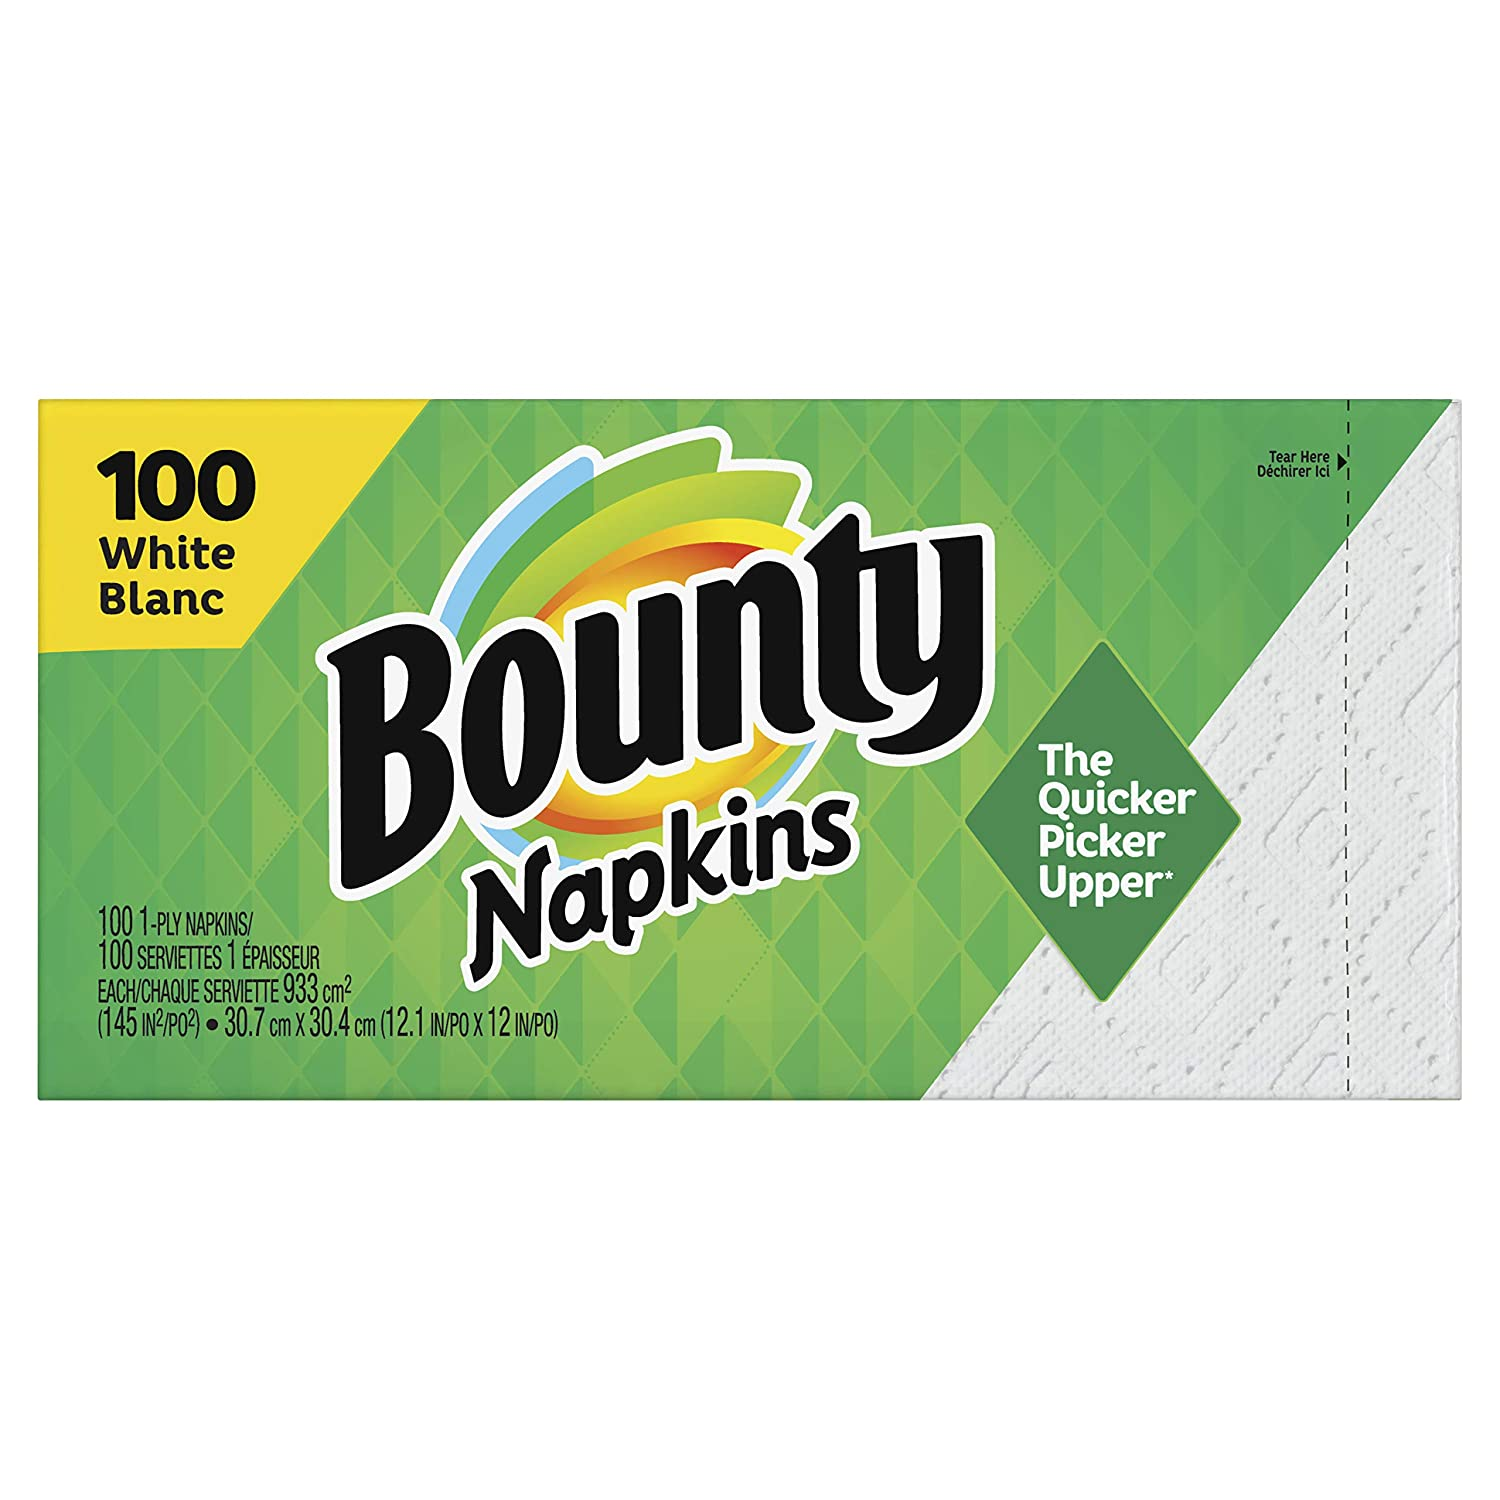 Bounty Quilted Napkins, 1-Ply, 12.1In X 12In, 100/PK, White